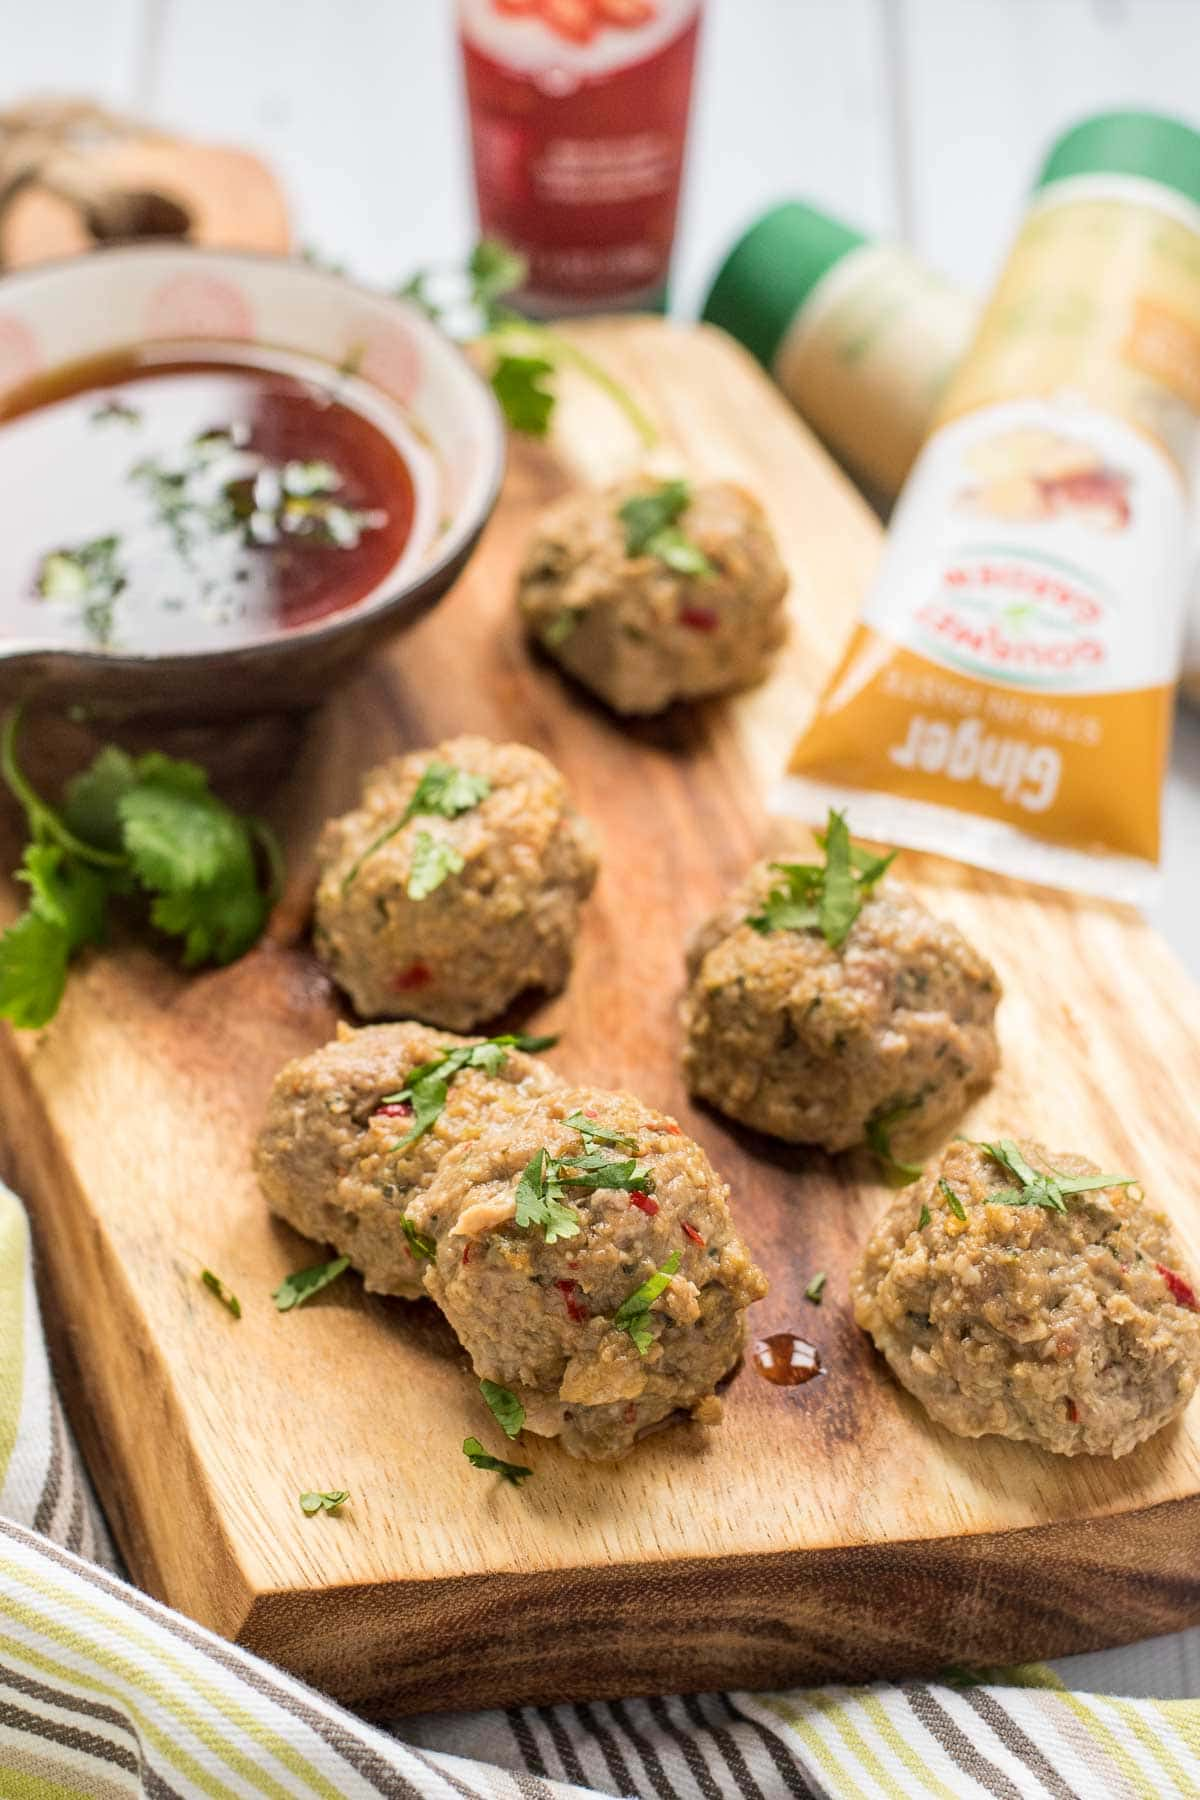 These Thai Turkey Meatballs are packed with flavor and a great healthy appetizer!